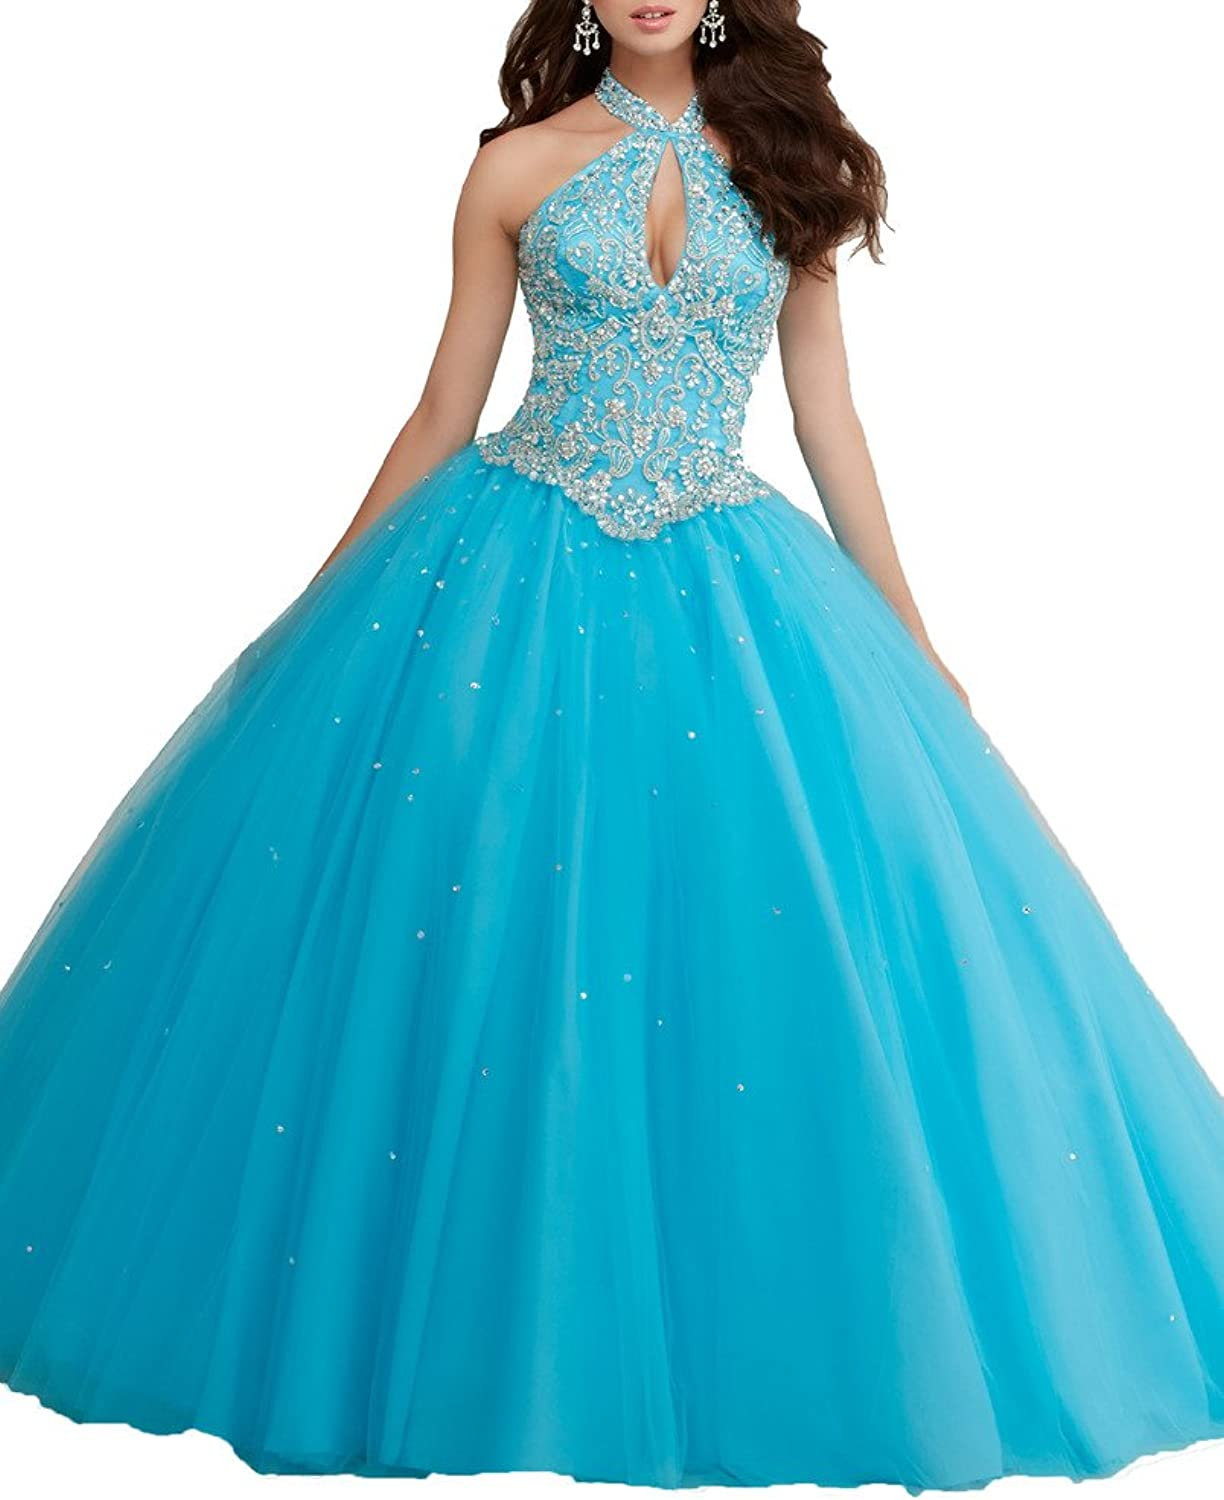 HSDJ Women's Halter Sweet 16 Prom Ball Gowns Crystal Beaded Quinceanera Dresses